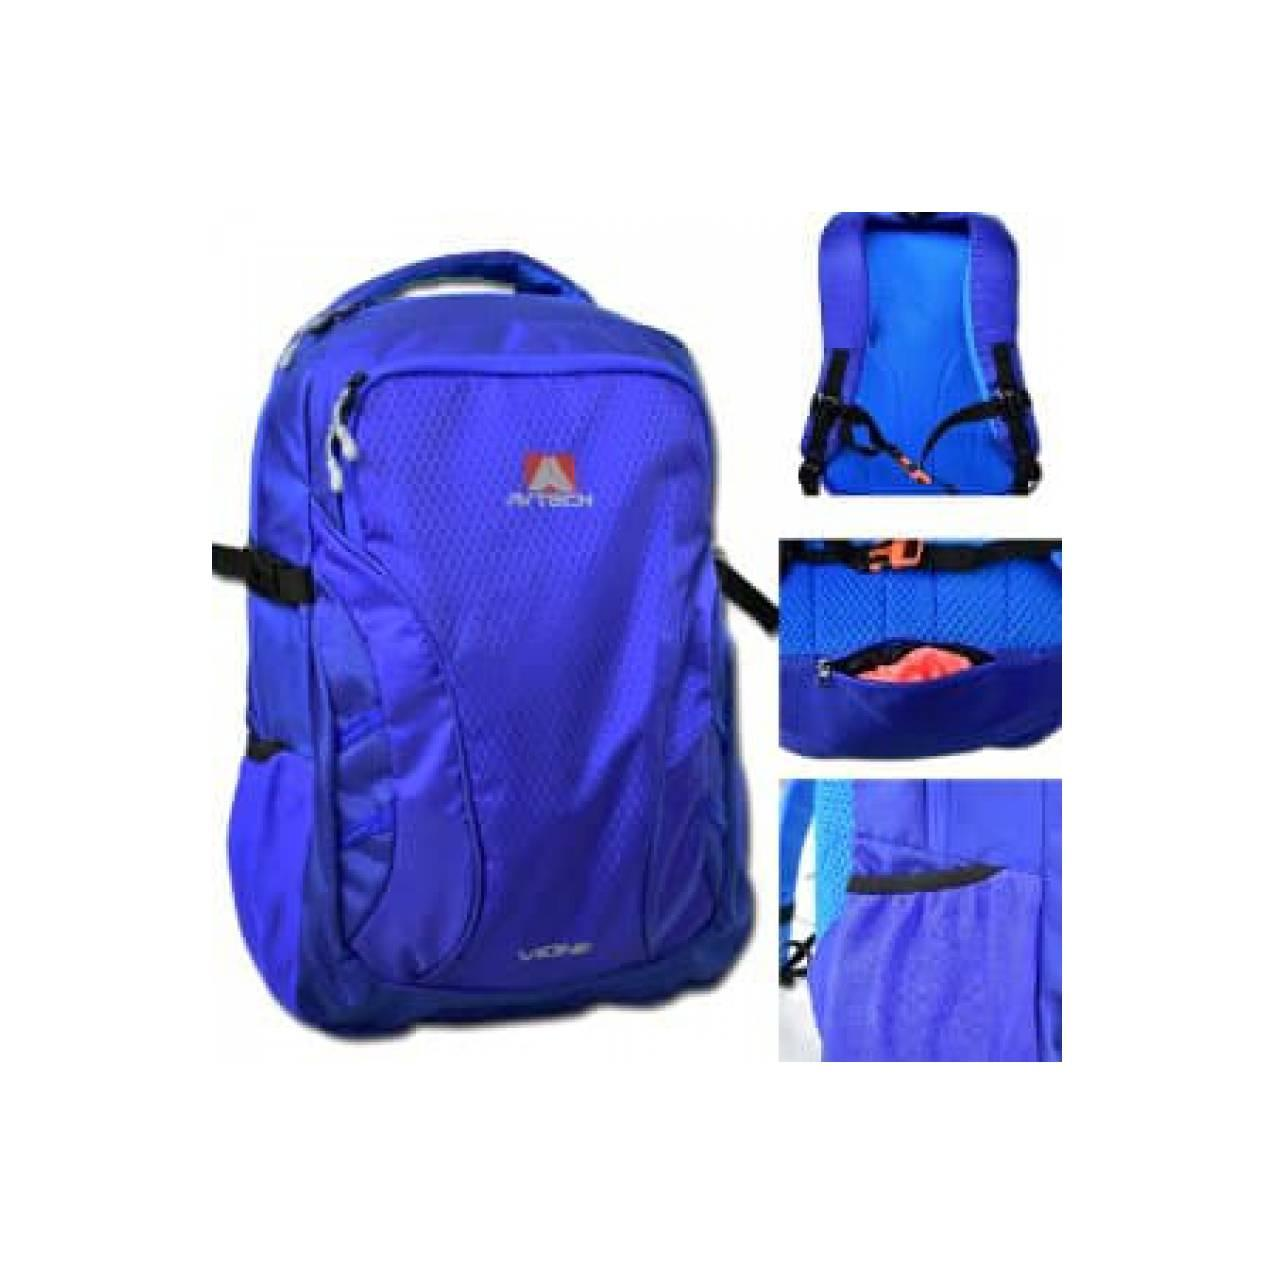 Daypack Avtech Vione 30 L not Consina not rei not eiger Limited